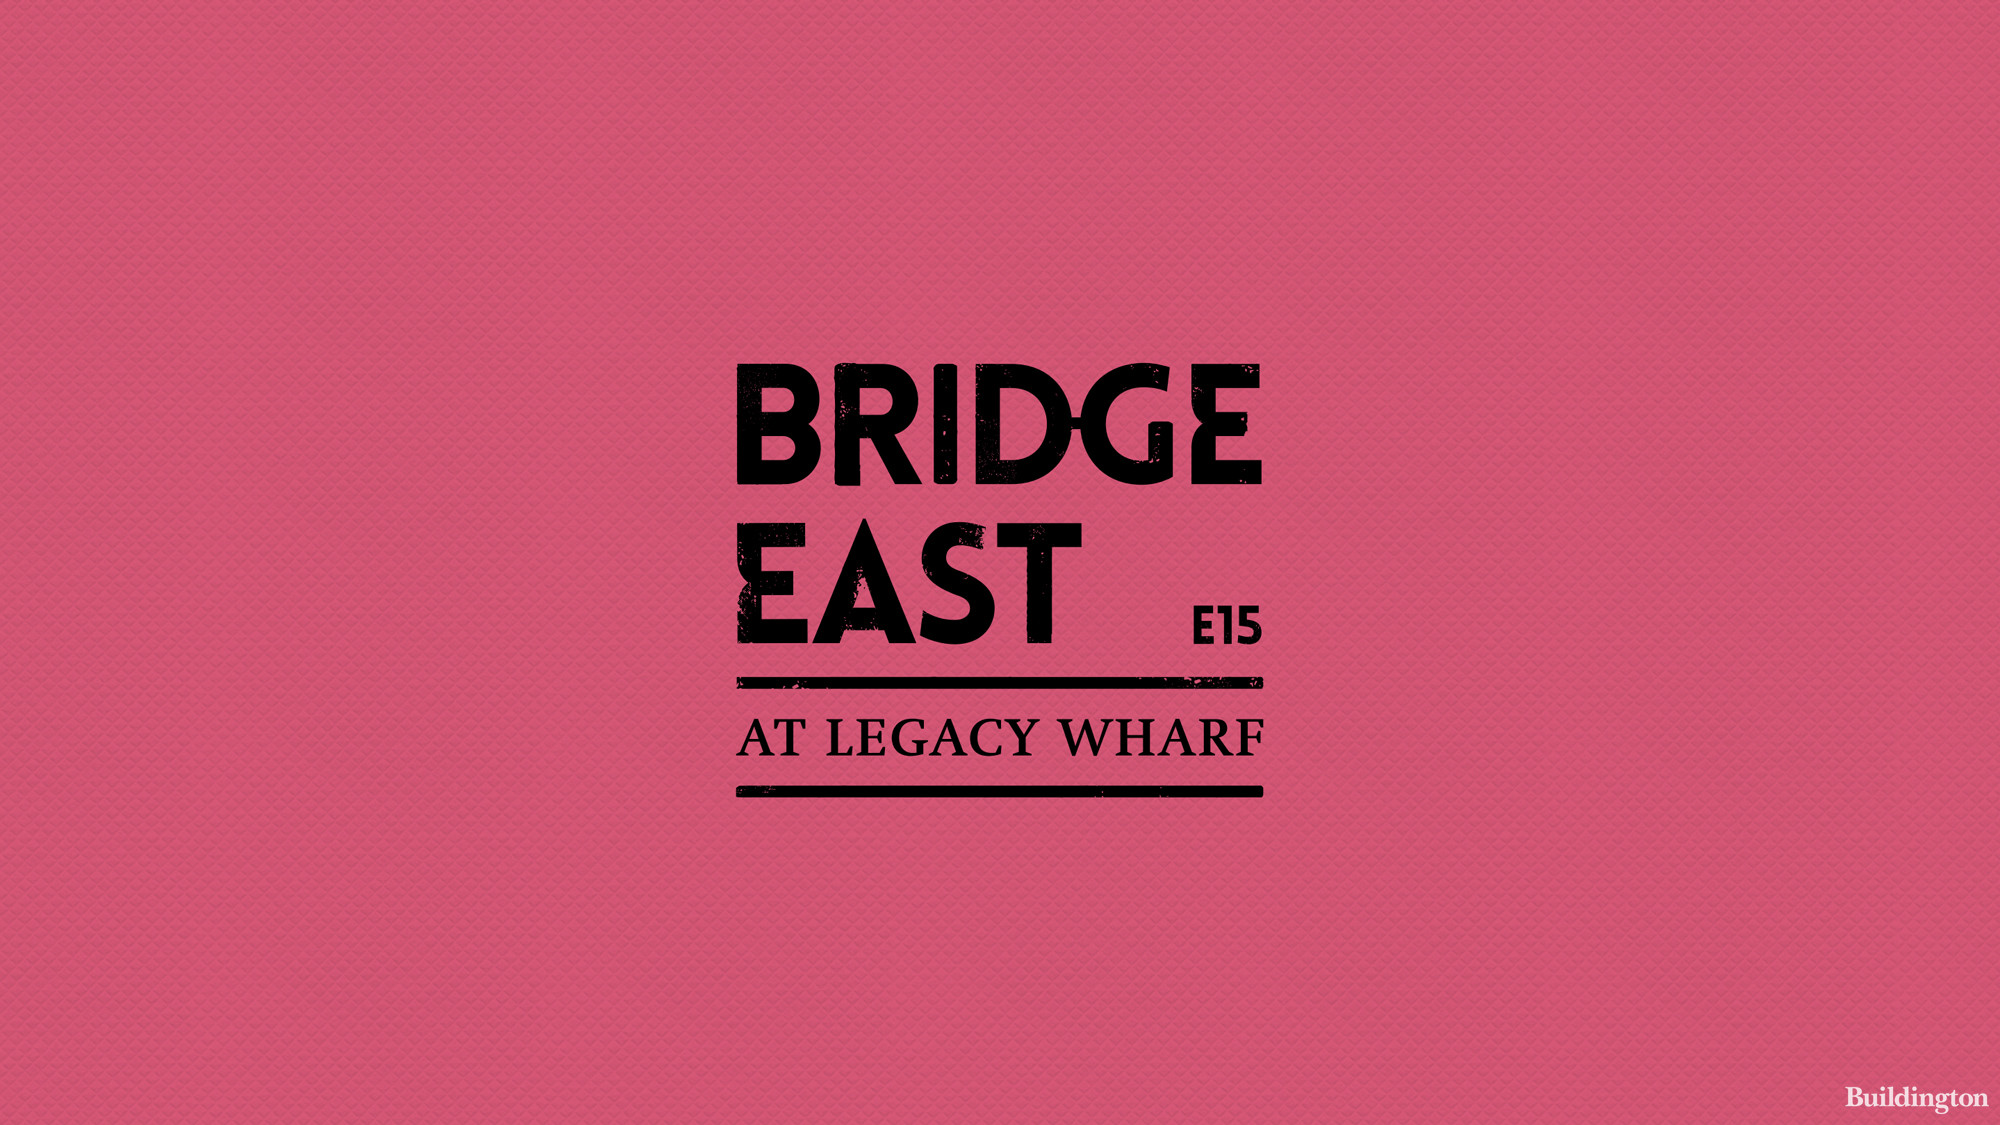 Bridge East new Shared Ownership homes in Stratford E15 for sale by Peabody.